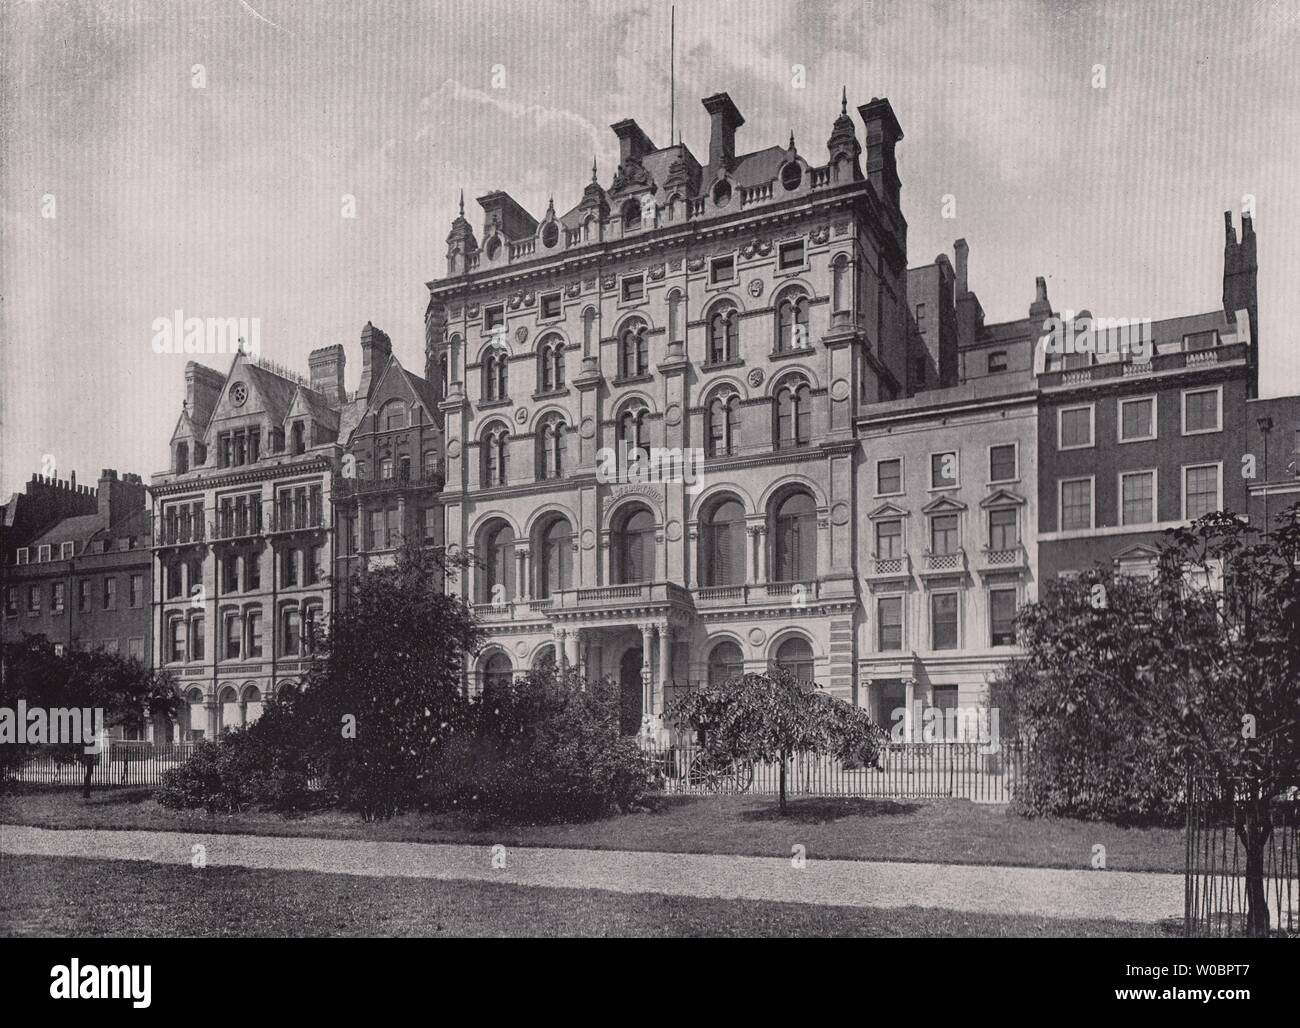 Lincoln's Inn Fields - Showing the Inns of court hotel. London 1896 old print - Stock Image